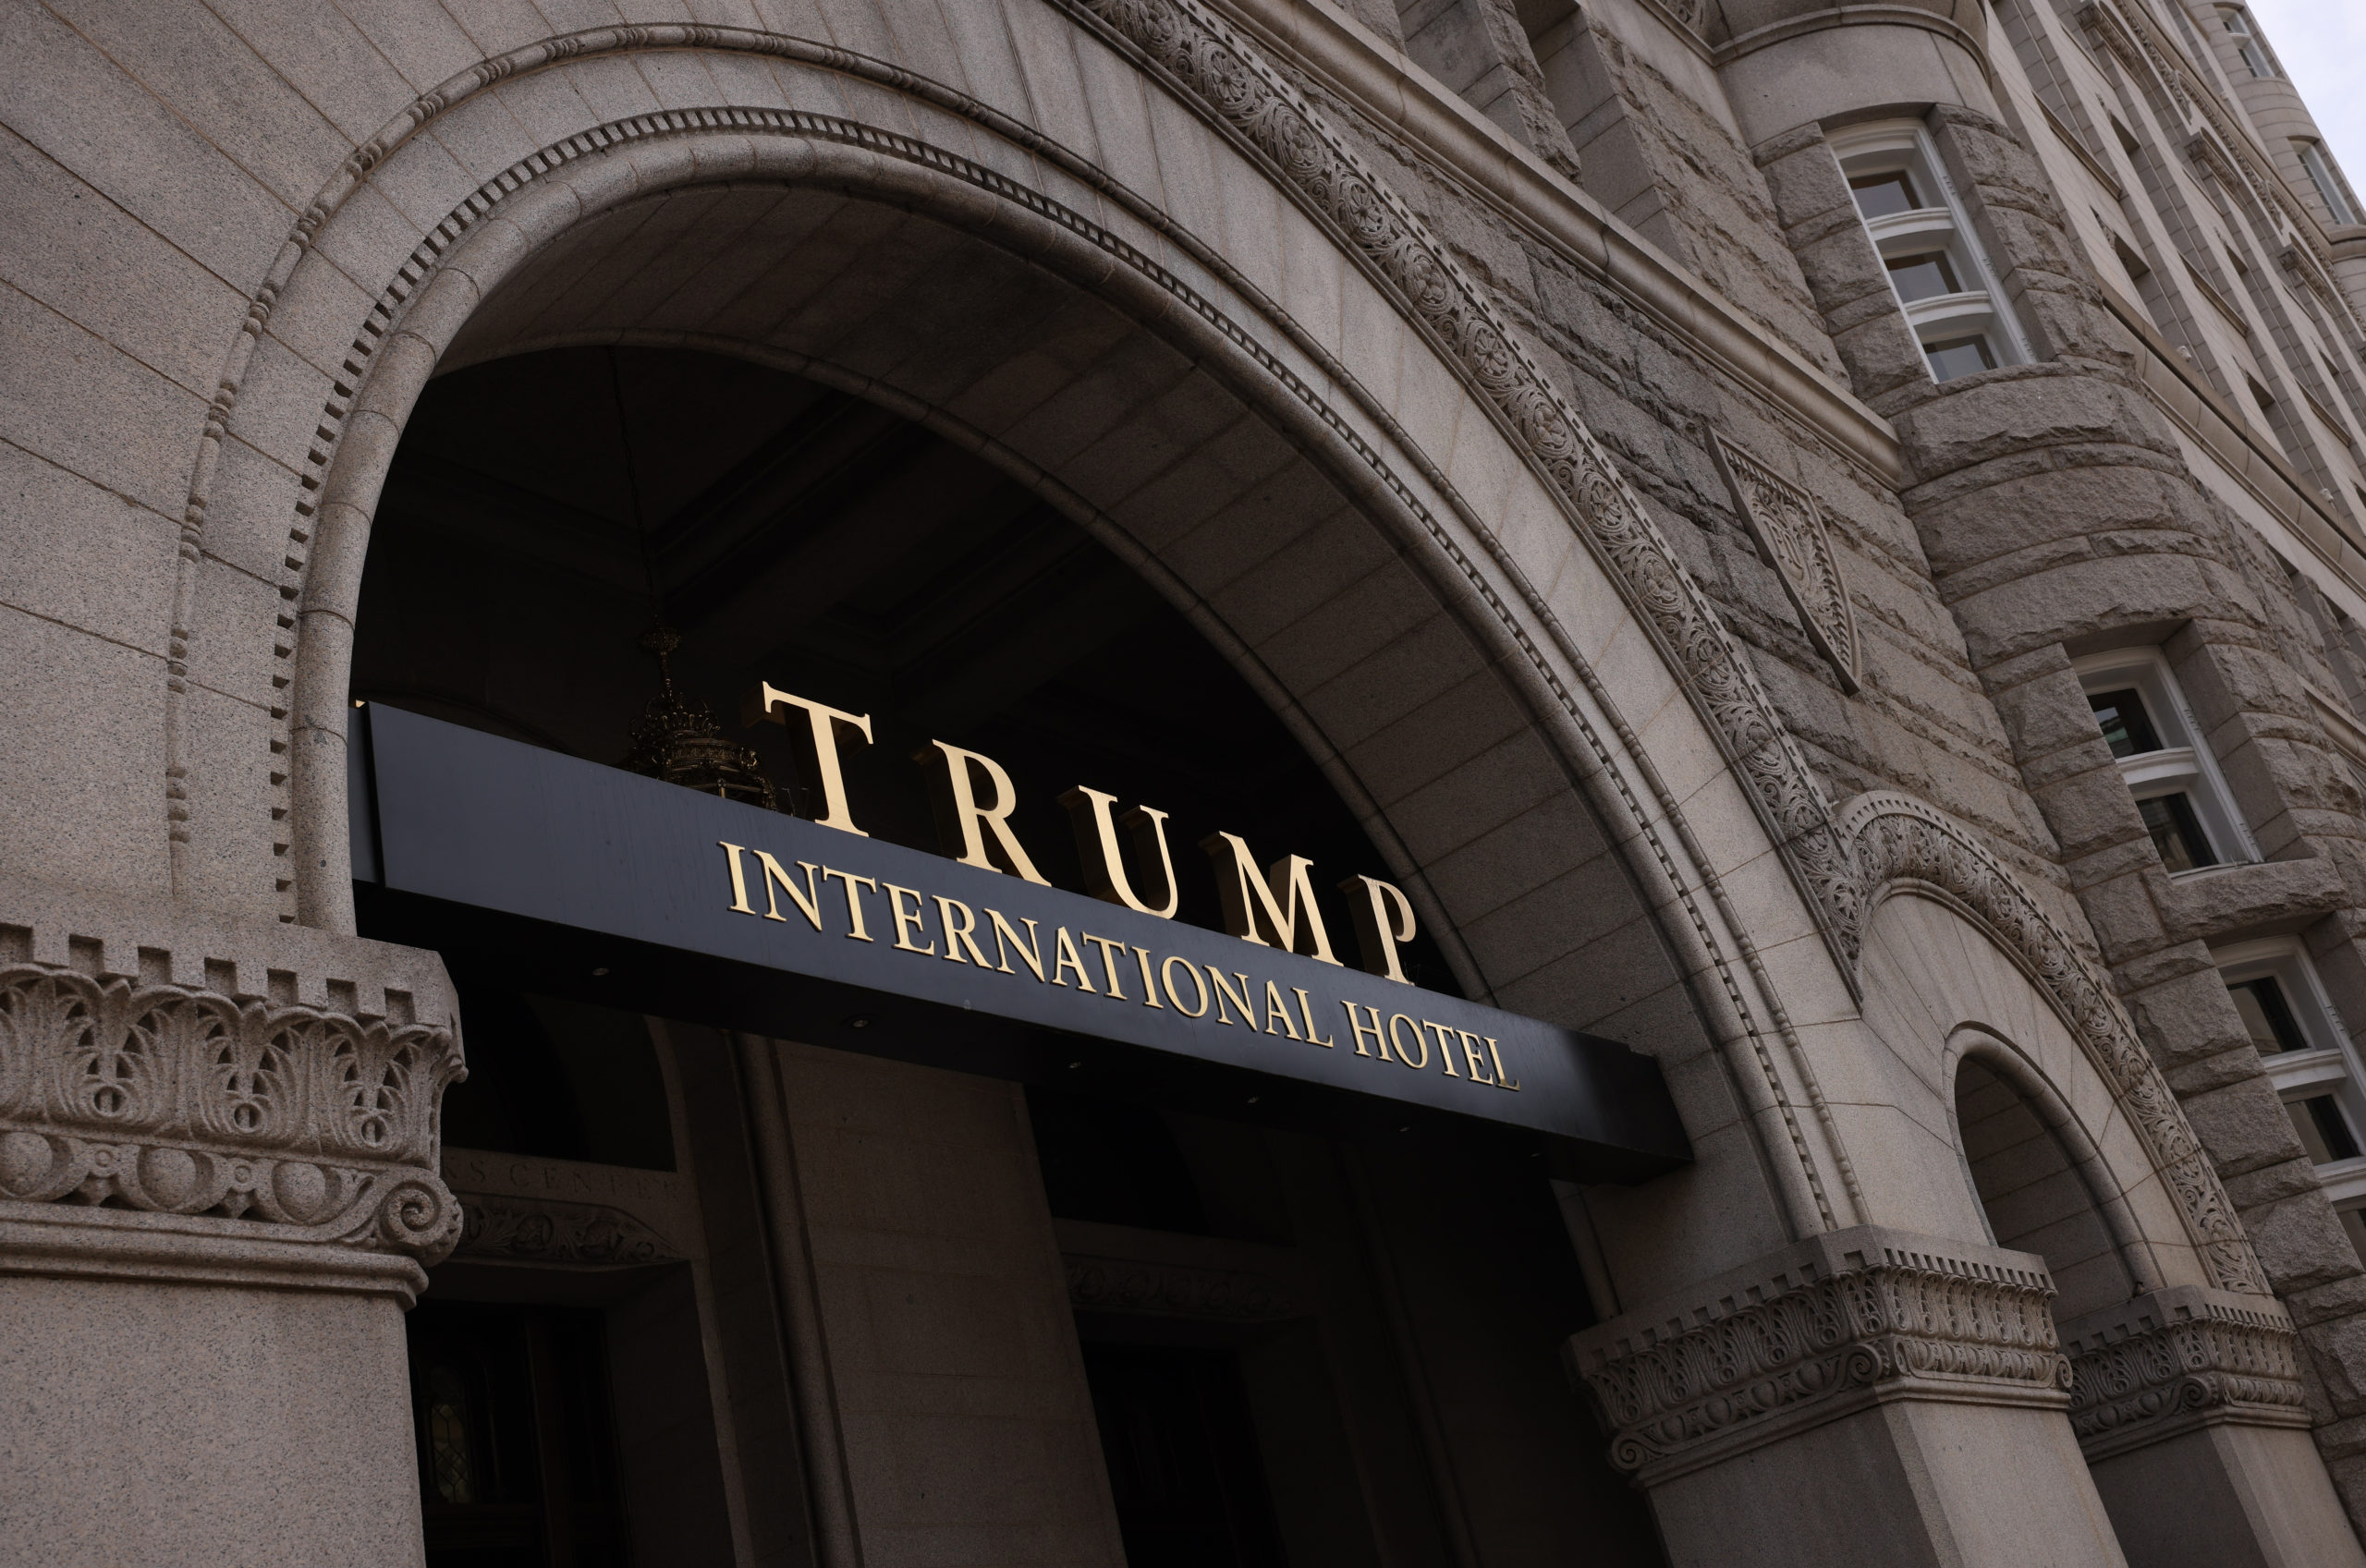 WASHINGTON, DC - JUNE 02: The Trump International Hotel is seen on June 02, 2021 in Washington, DC. The Trump Organization is attempting to sell the lease to the hotel after failing to in 2019 before the pandemic hit. (Photo by Kevin Dietsch/Getty Images)